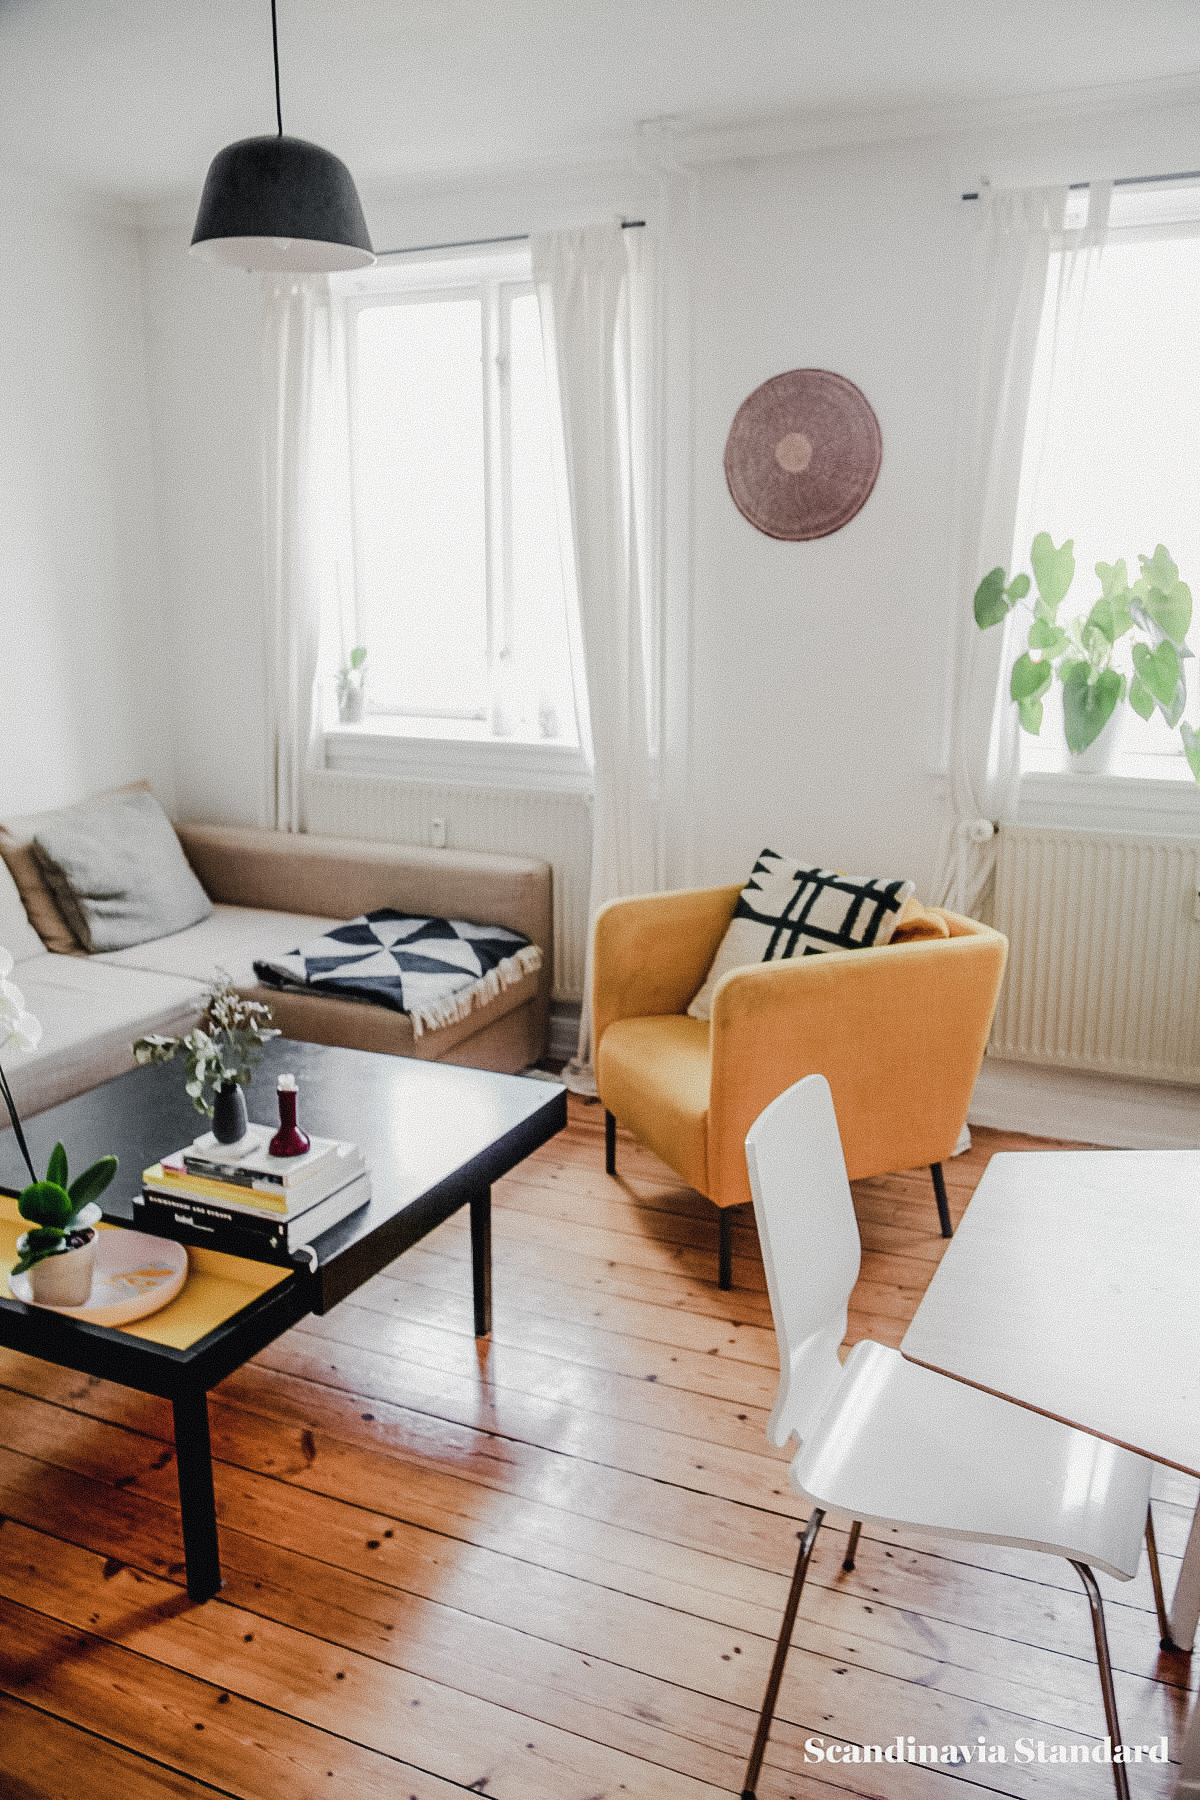 the-white-room-rebeccas-nordvest-apartment-copenhagen-interiors-scandianvia-standard-7578